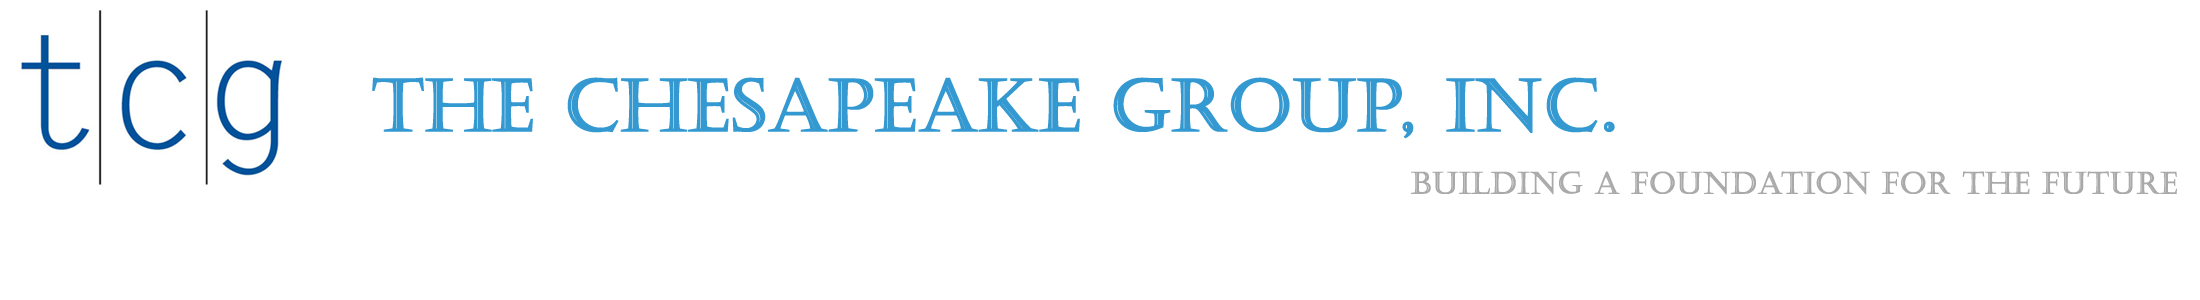 The Chesapeake Group, Inc.